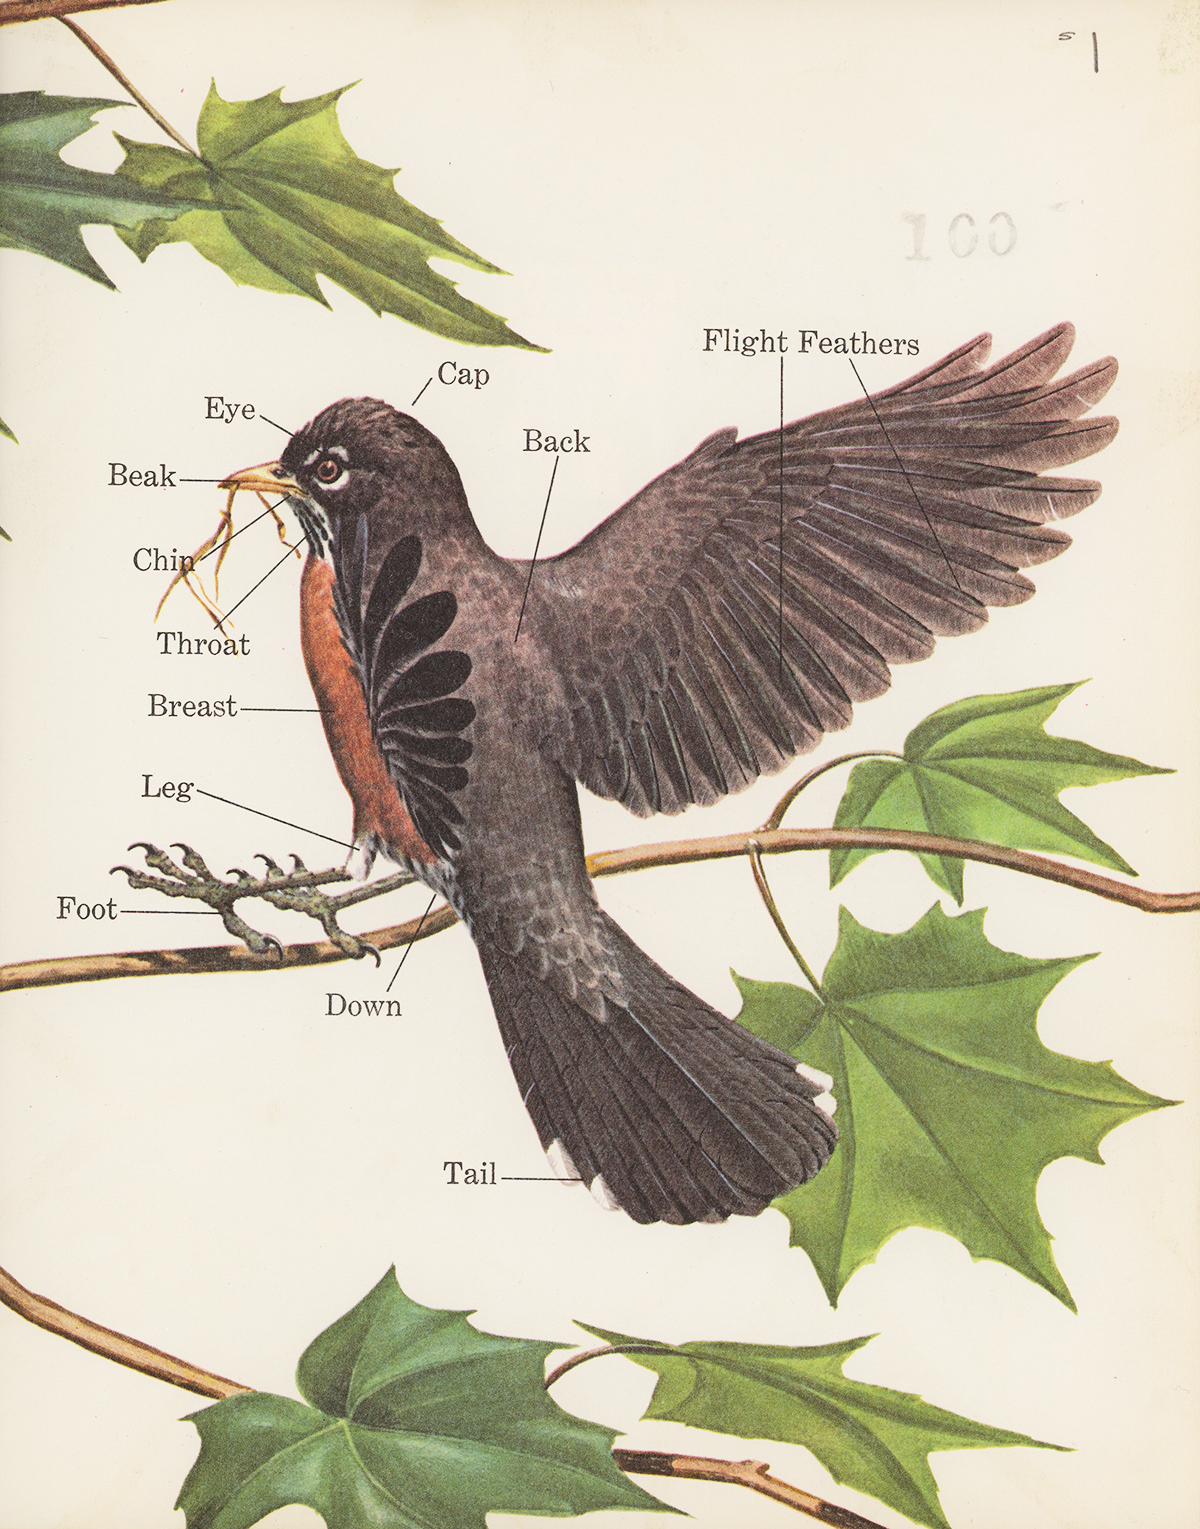 hight resolution of here is another book with fully illustrated endpages and these feature a very simplified anatomical diagram of a robin bringing a twig to a nest